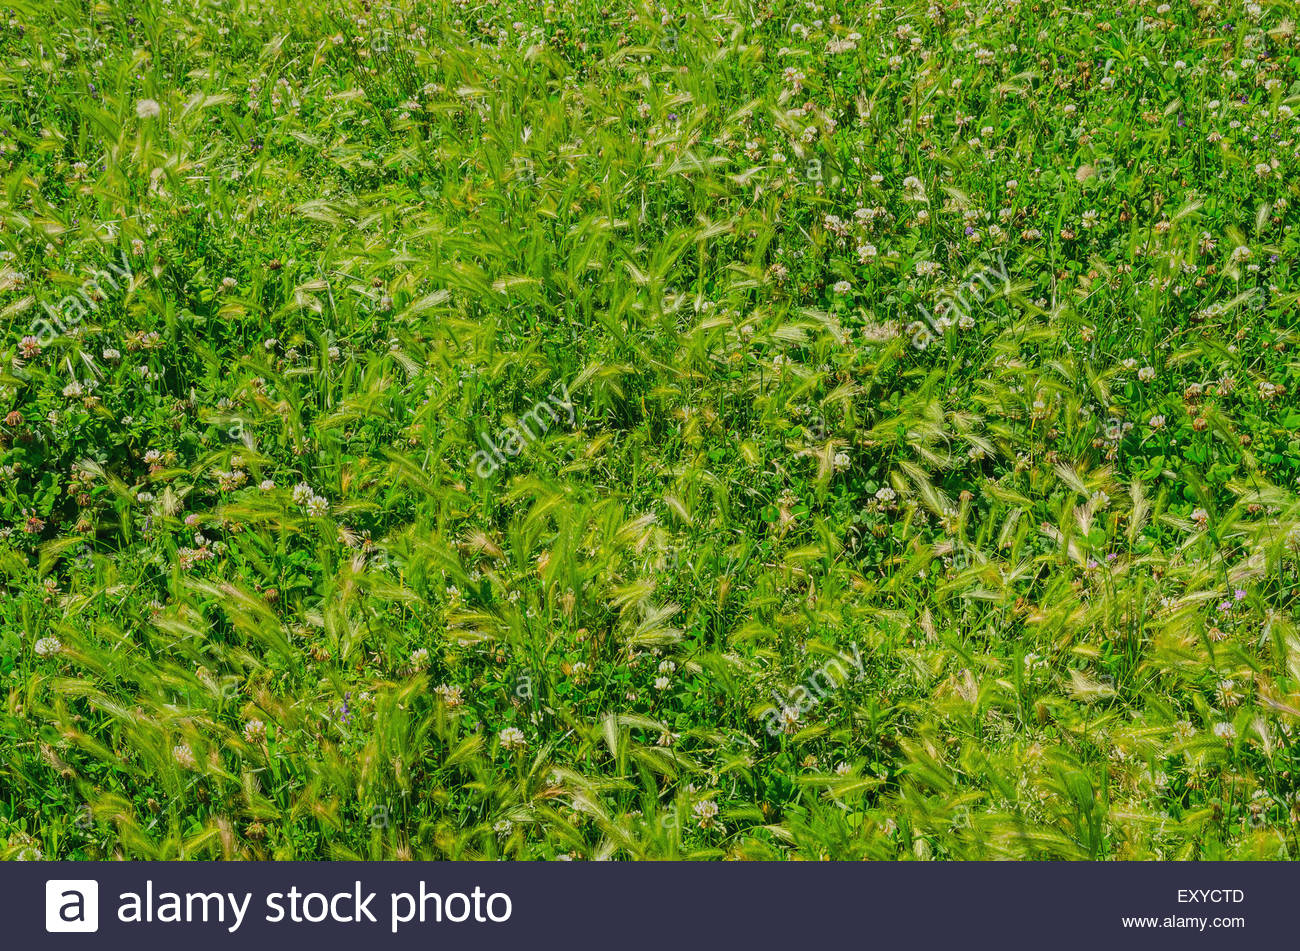 Natural green background with wild flowers, lawn and grass - Stock Image